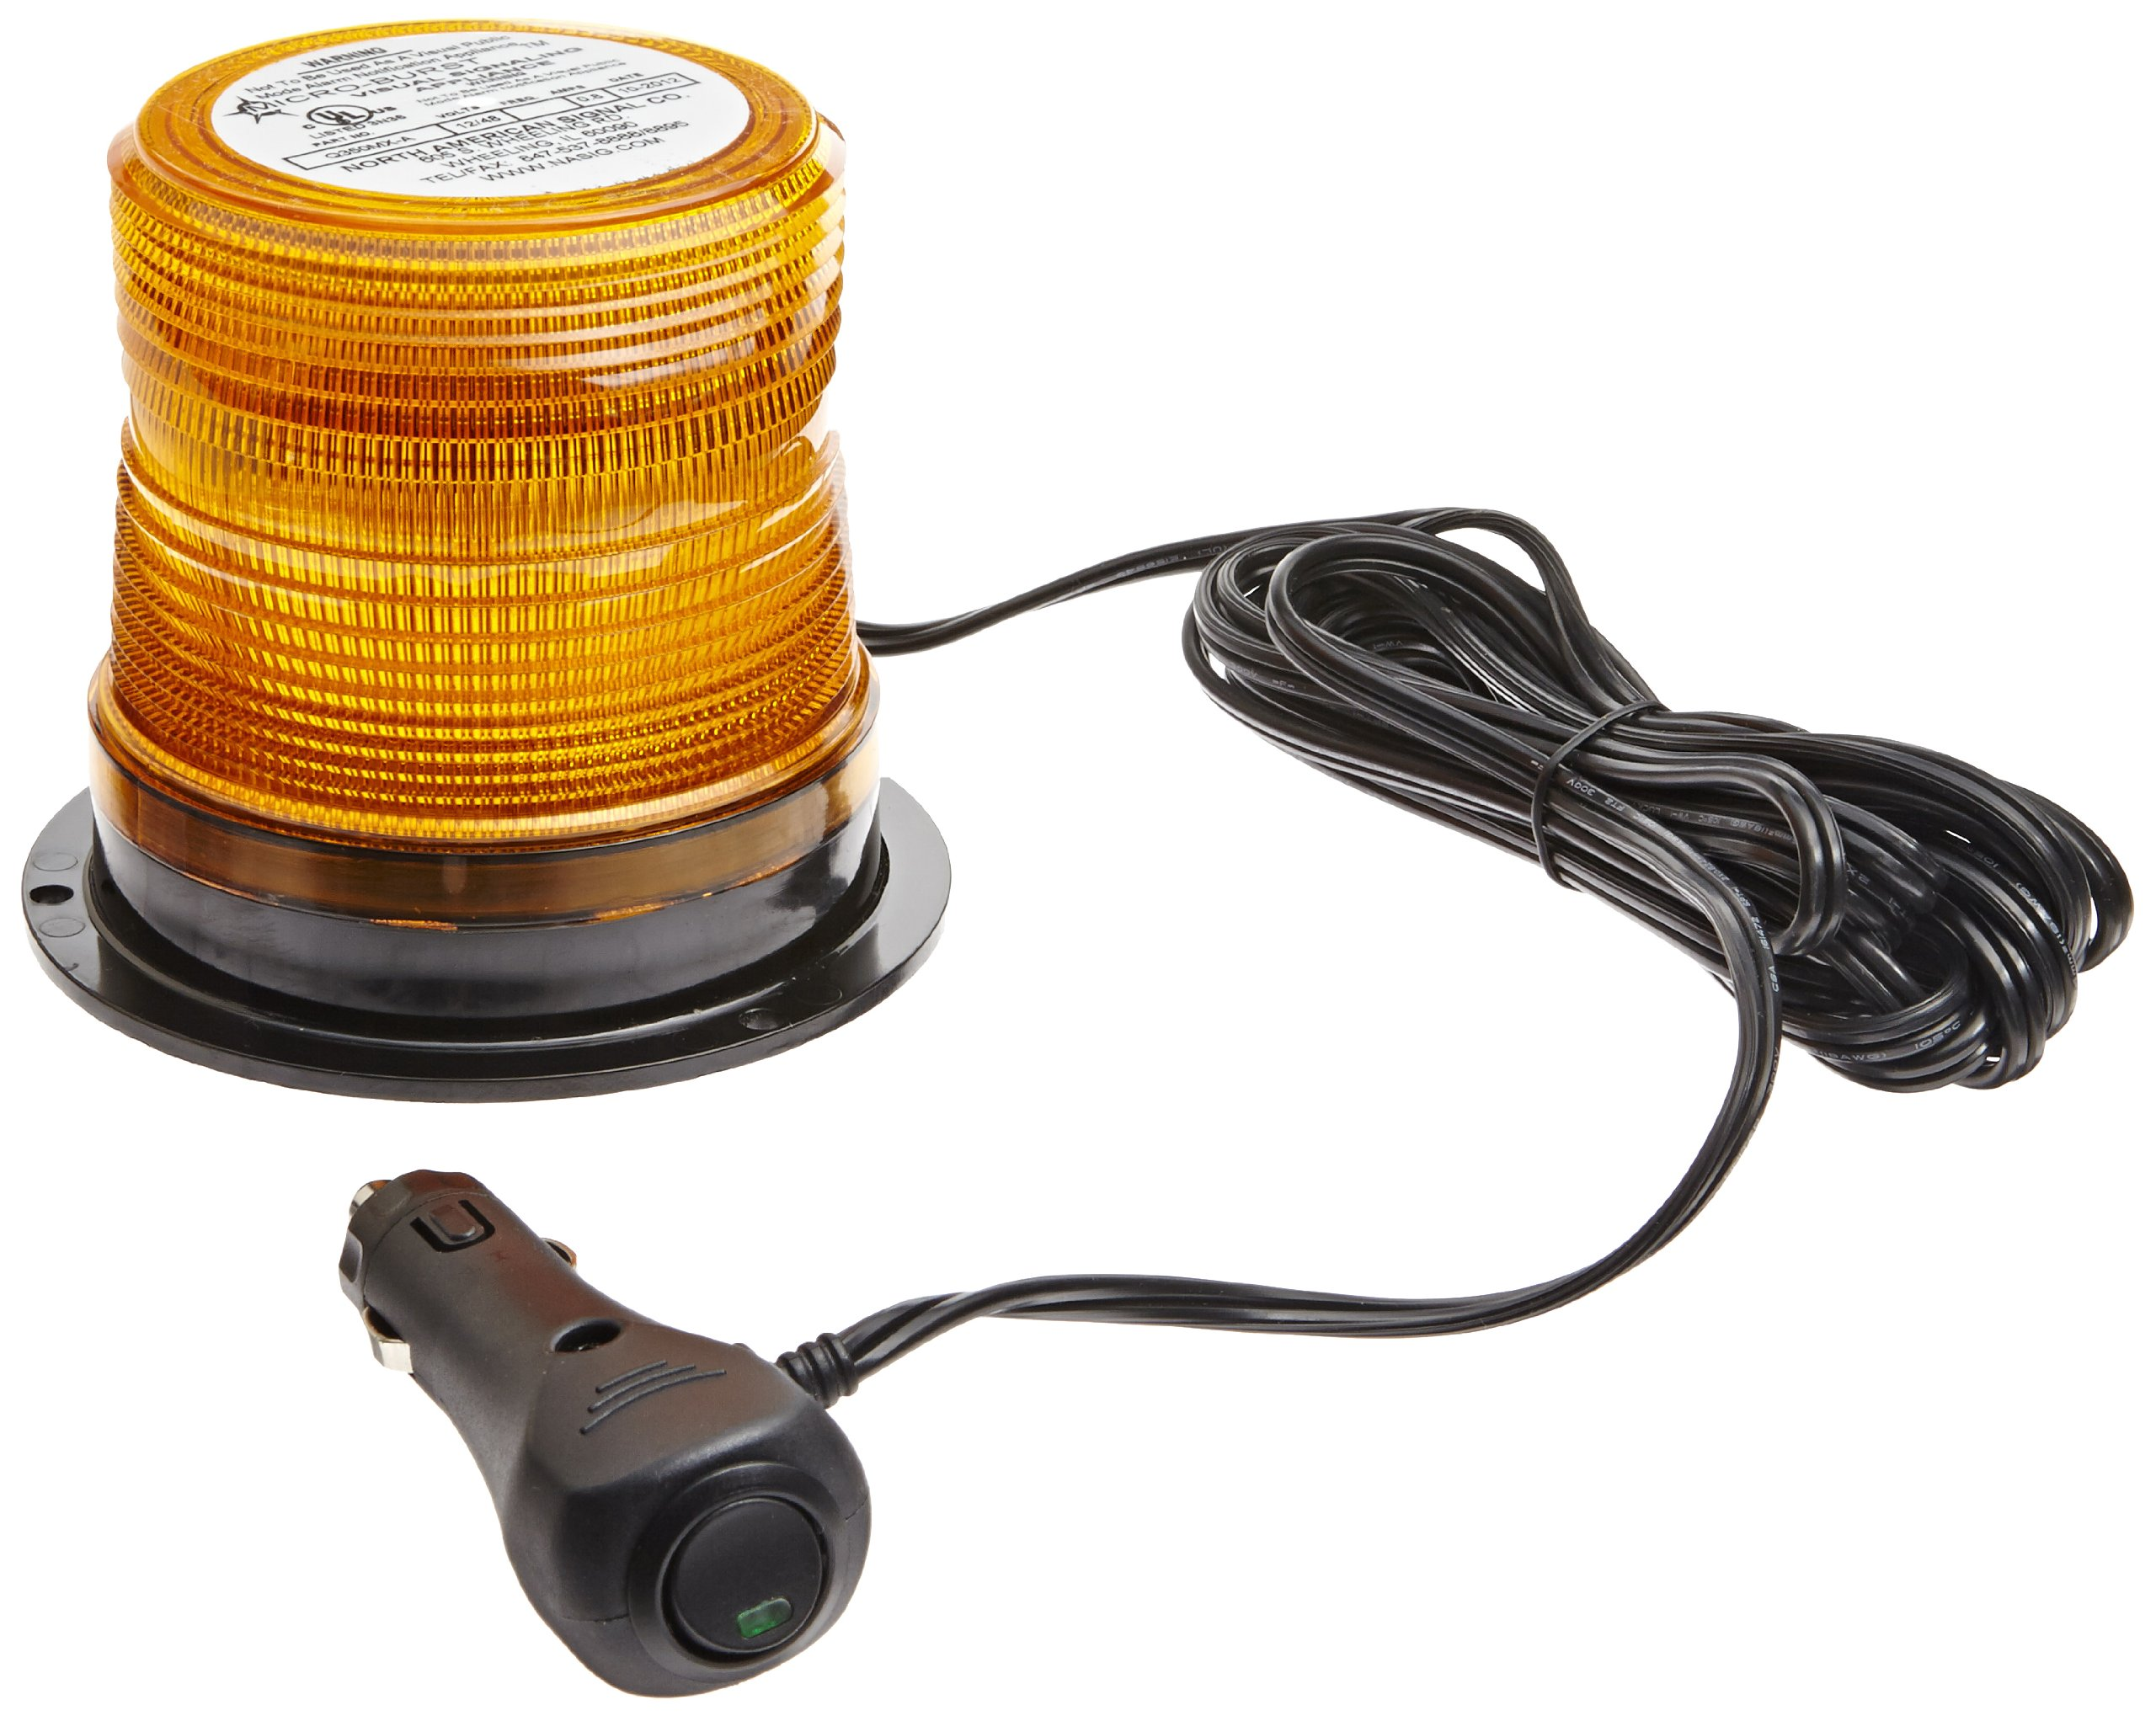 Jackson Safety 18369 Mini Strobe with Plugs into Lighter, 4'' Diameter x 3-1/2'' Height, Amber